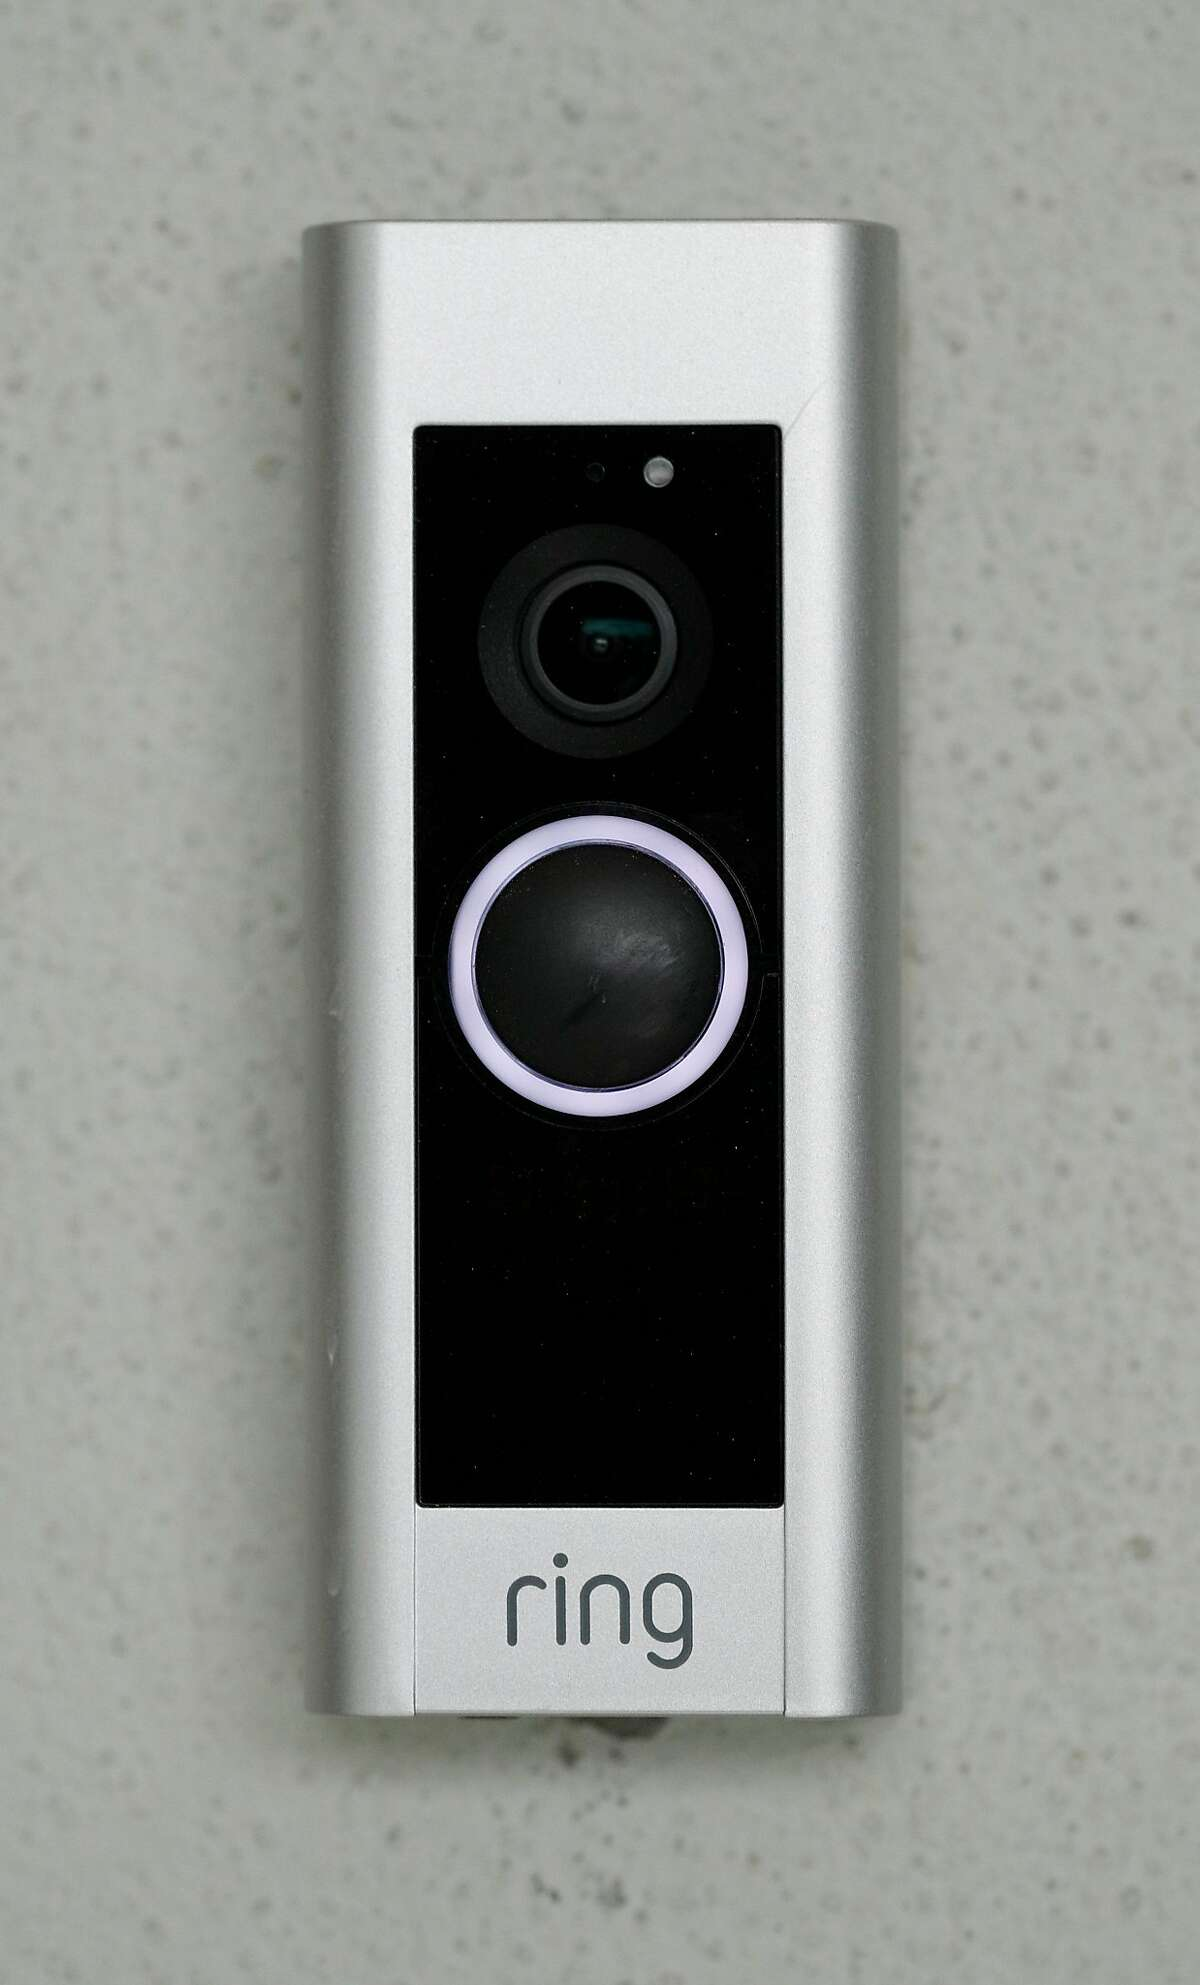 Ring  The now wildly popular doorbell cameras help nab porch pirates and burglars. Police agencies, including the Houston Police Department, have partnered with the company since its inception in 2011. The sharks on Shark Tank actually rejected inventor Jamie Siminoff's idea when he first appeared on the show.